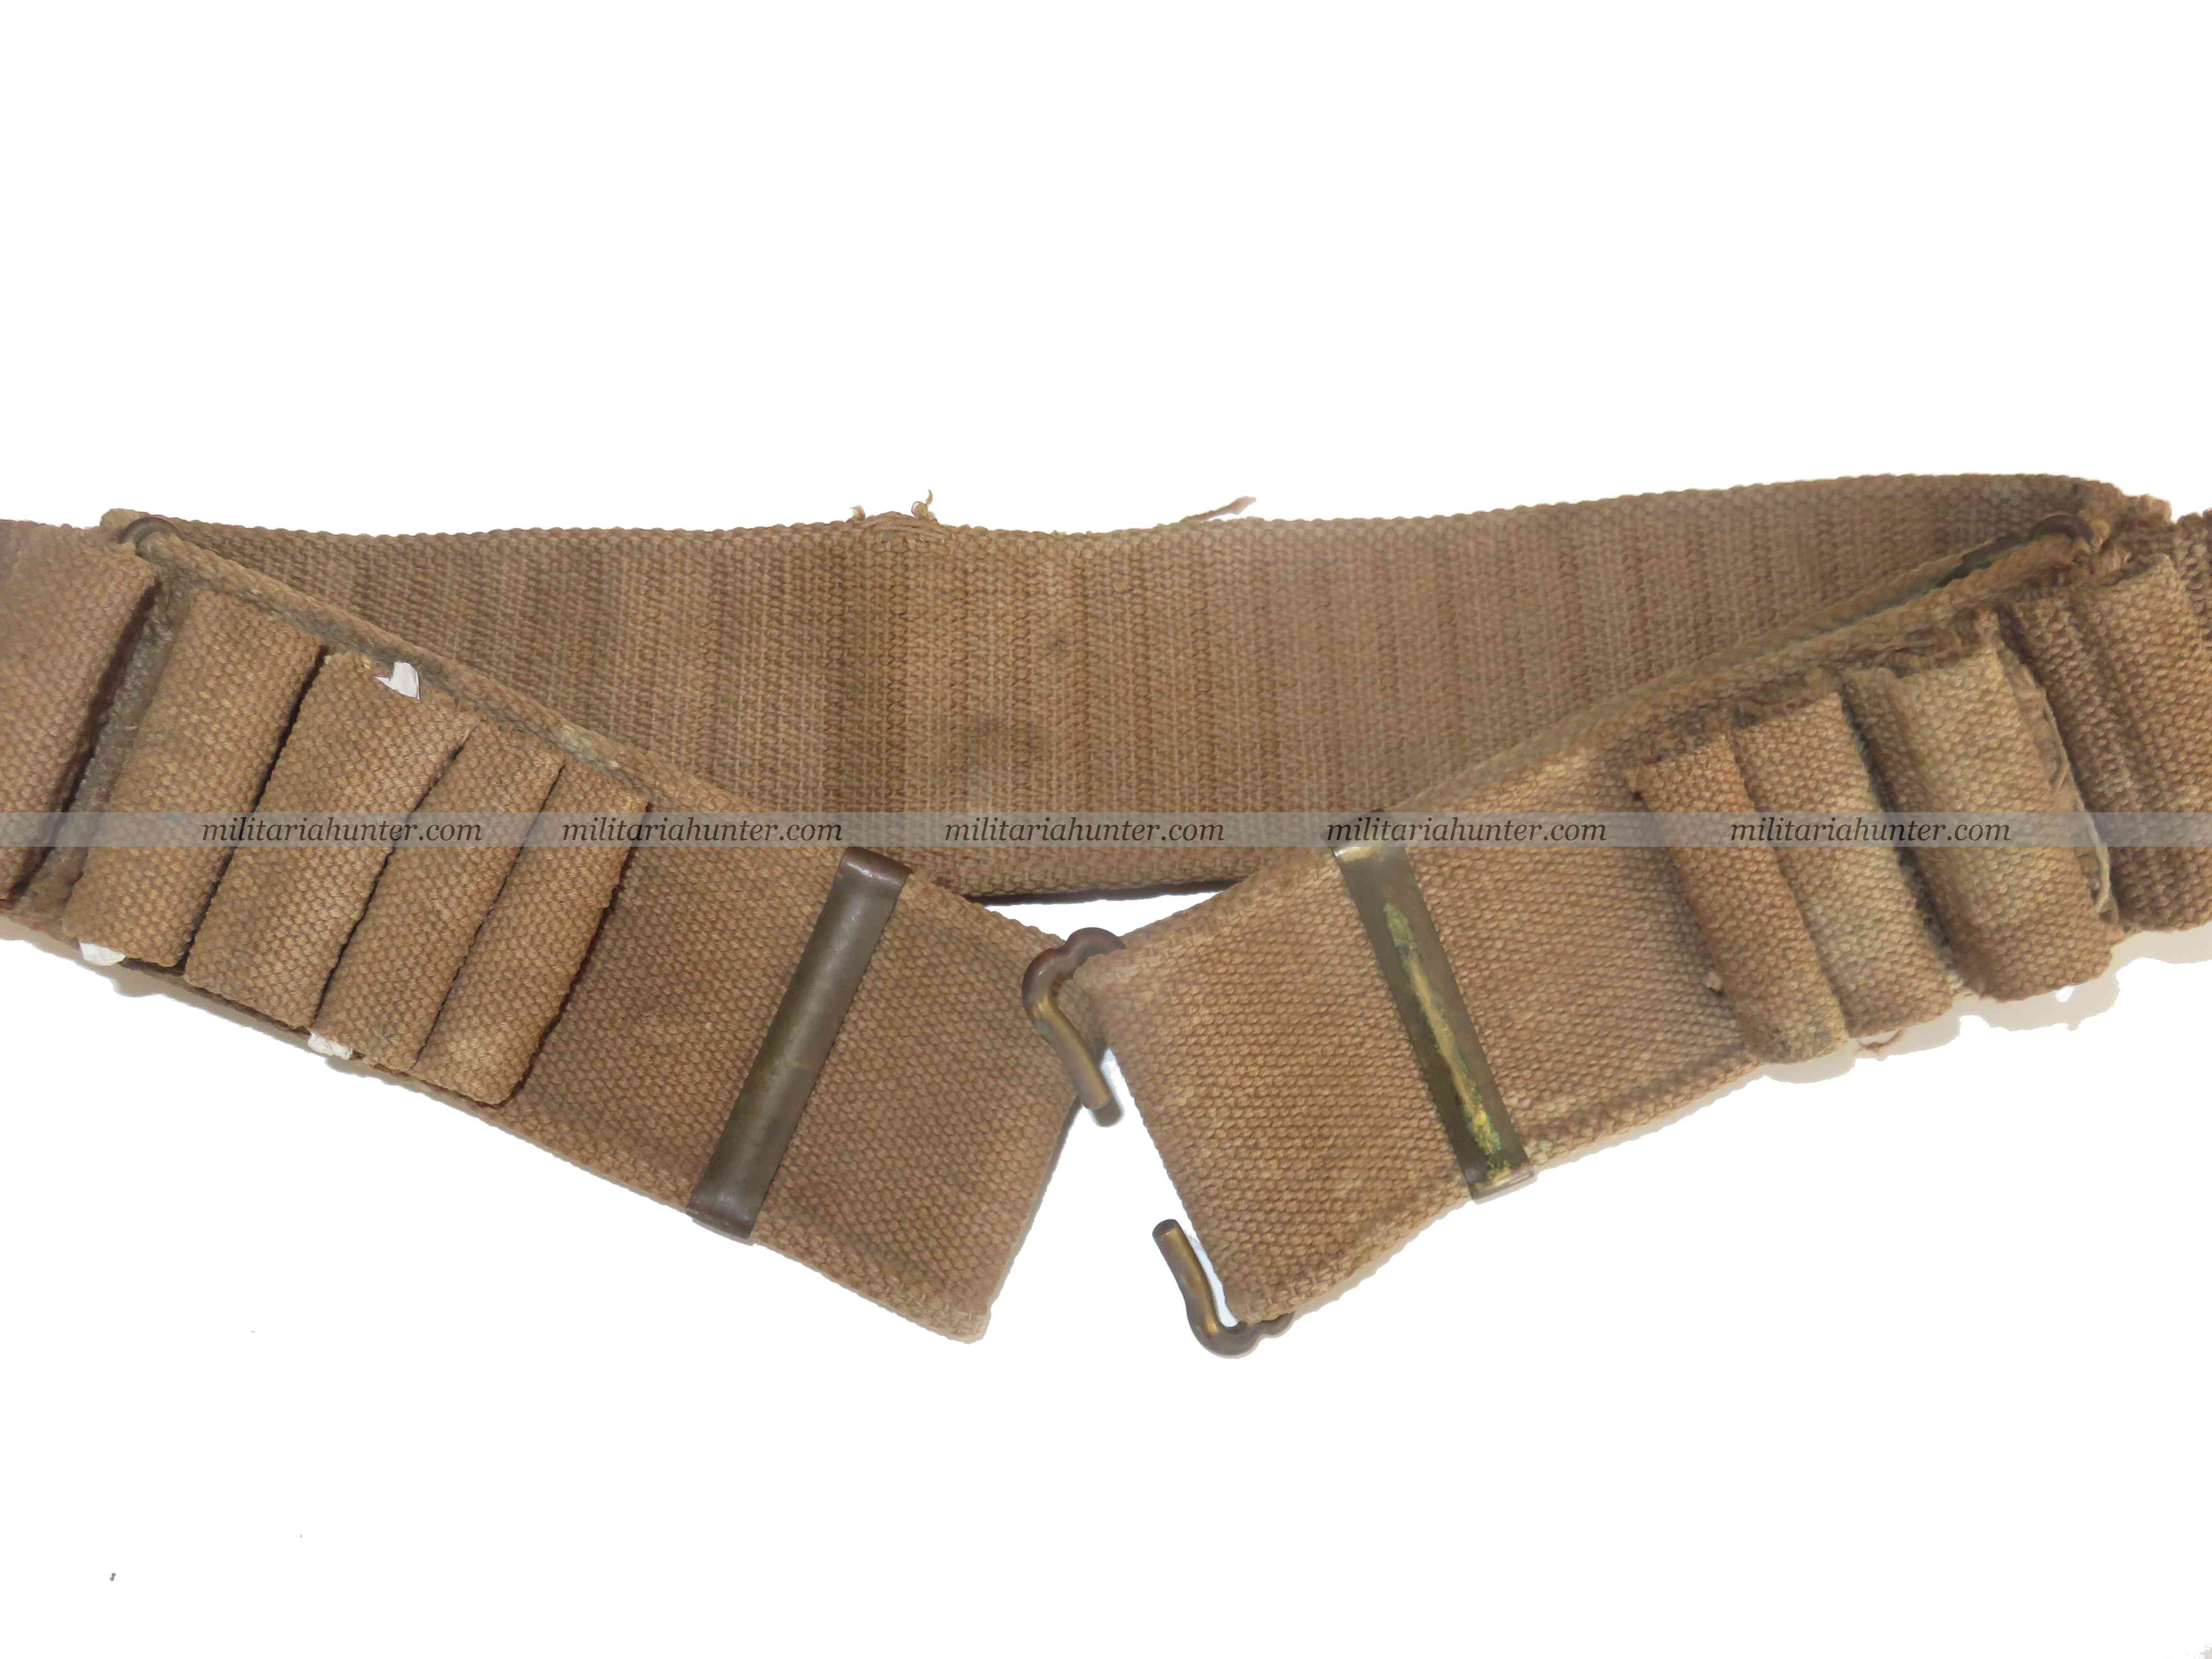 militaria : US ww1 early Mills shotgun ammunition belt